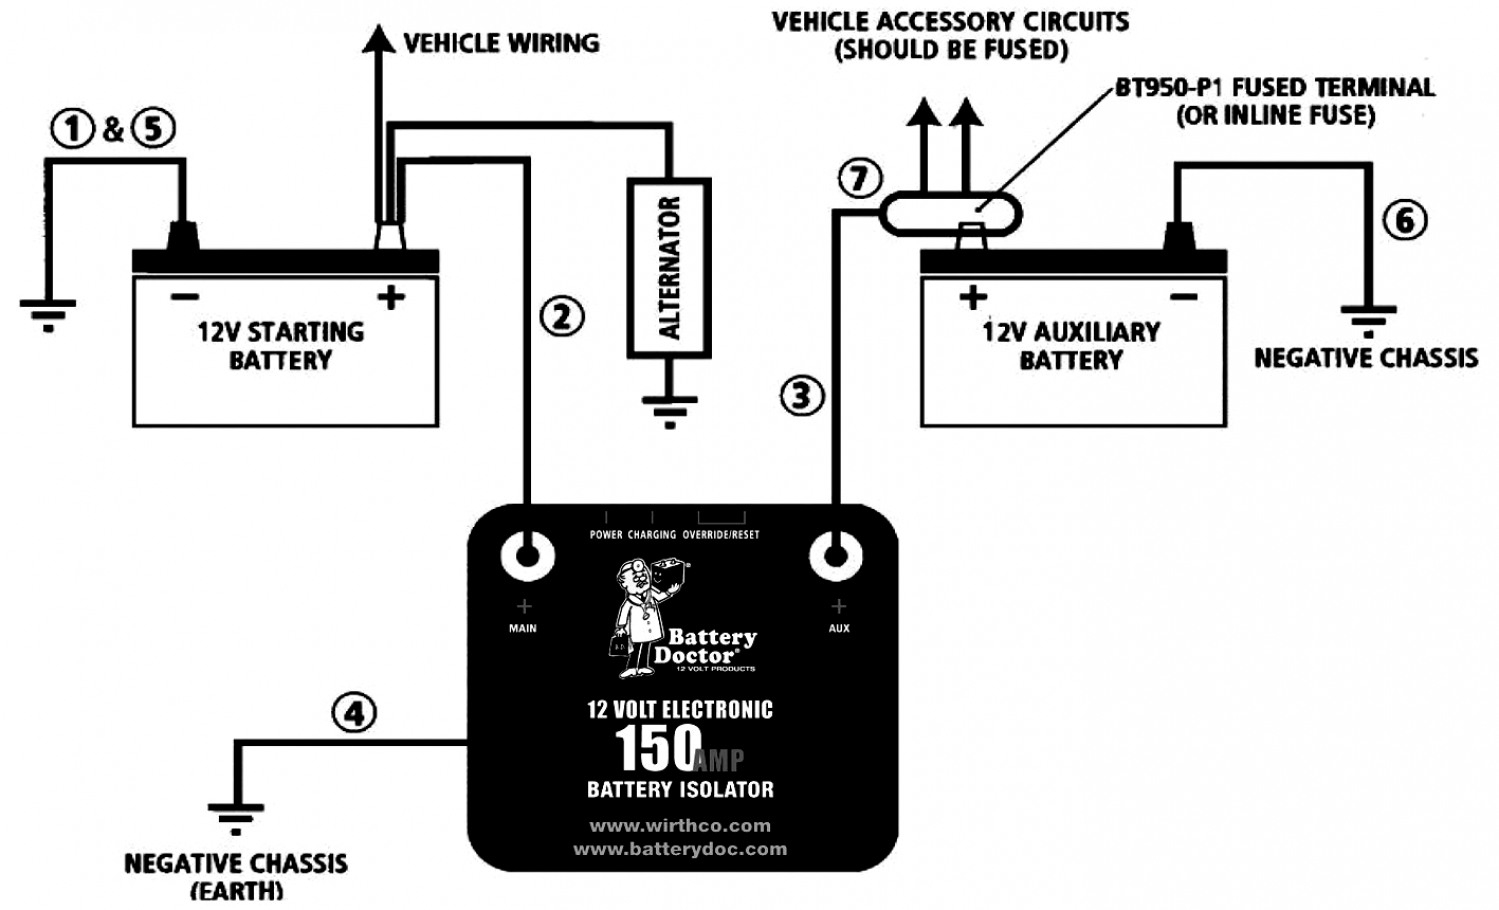 99 Chevy Battery Isolator Wiring - wiring diagram subject-stroke -  subject-stroke.labottegadisilvia.it | Battery Isolator Wiring Diagram Gmc Truck |  | subject-stroke.labottegadisilvia.it